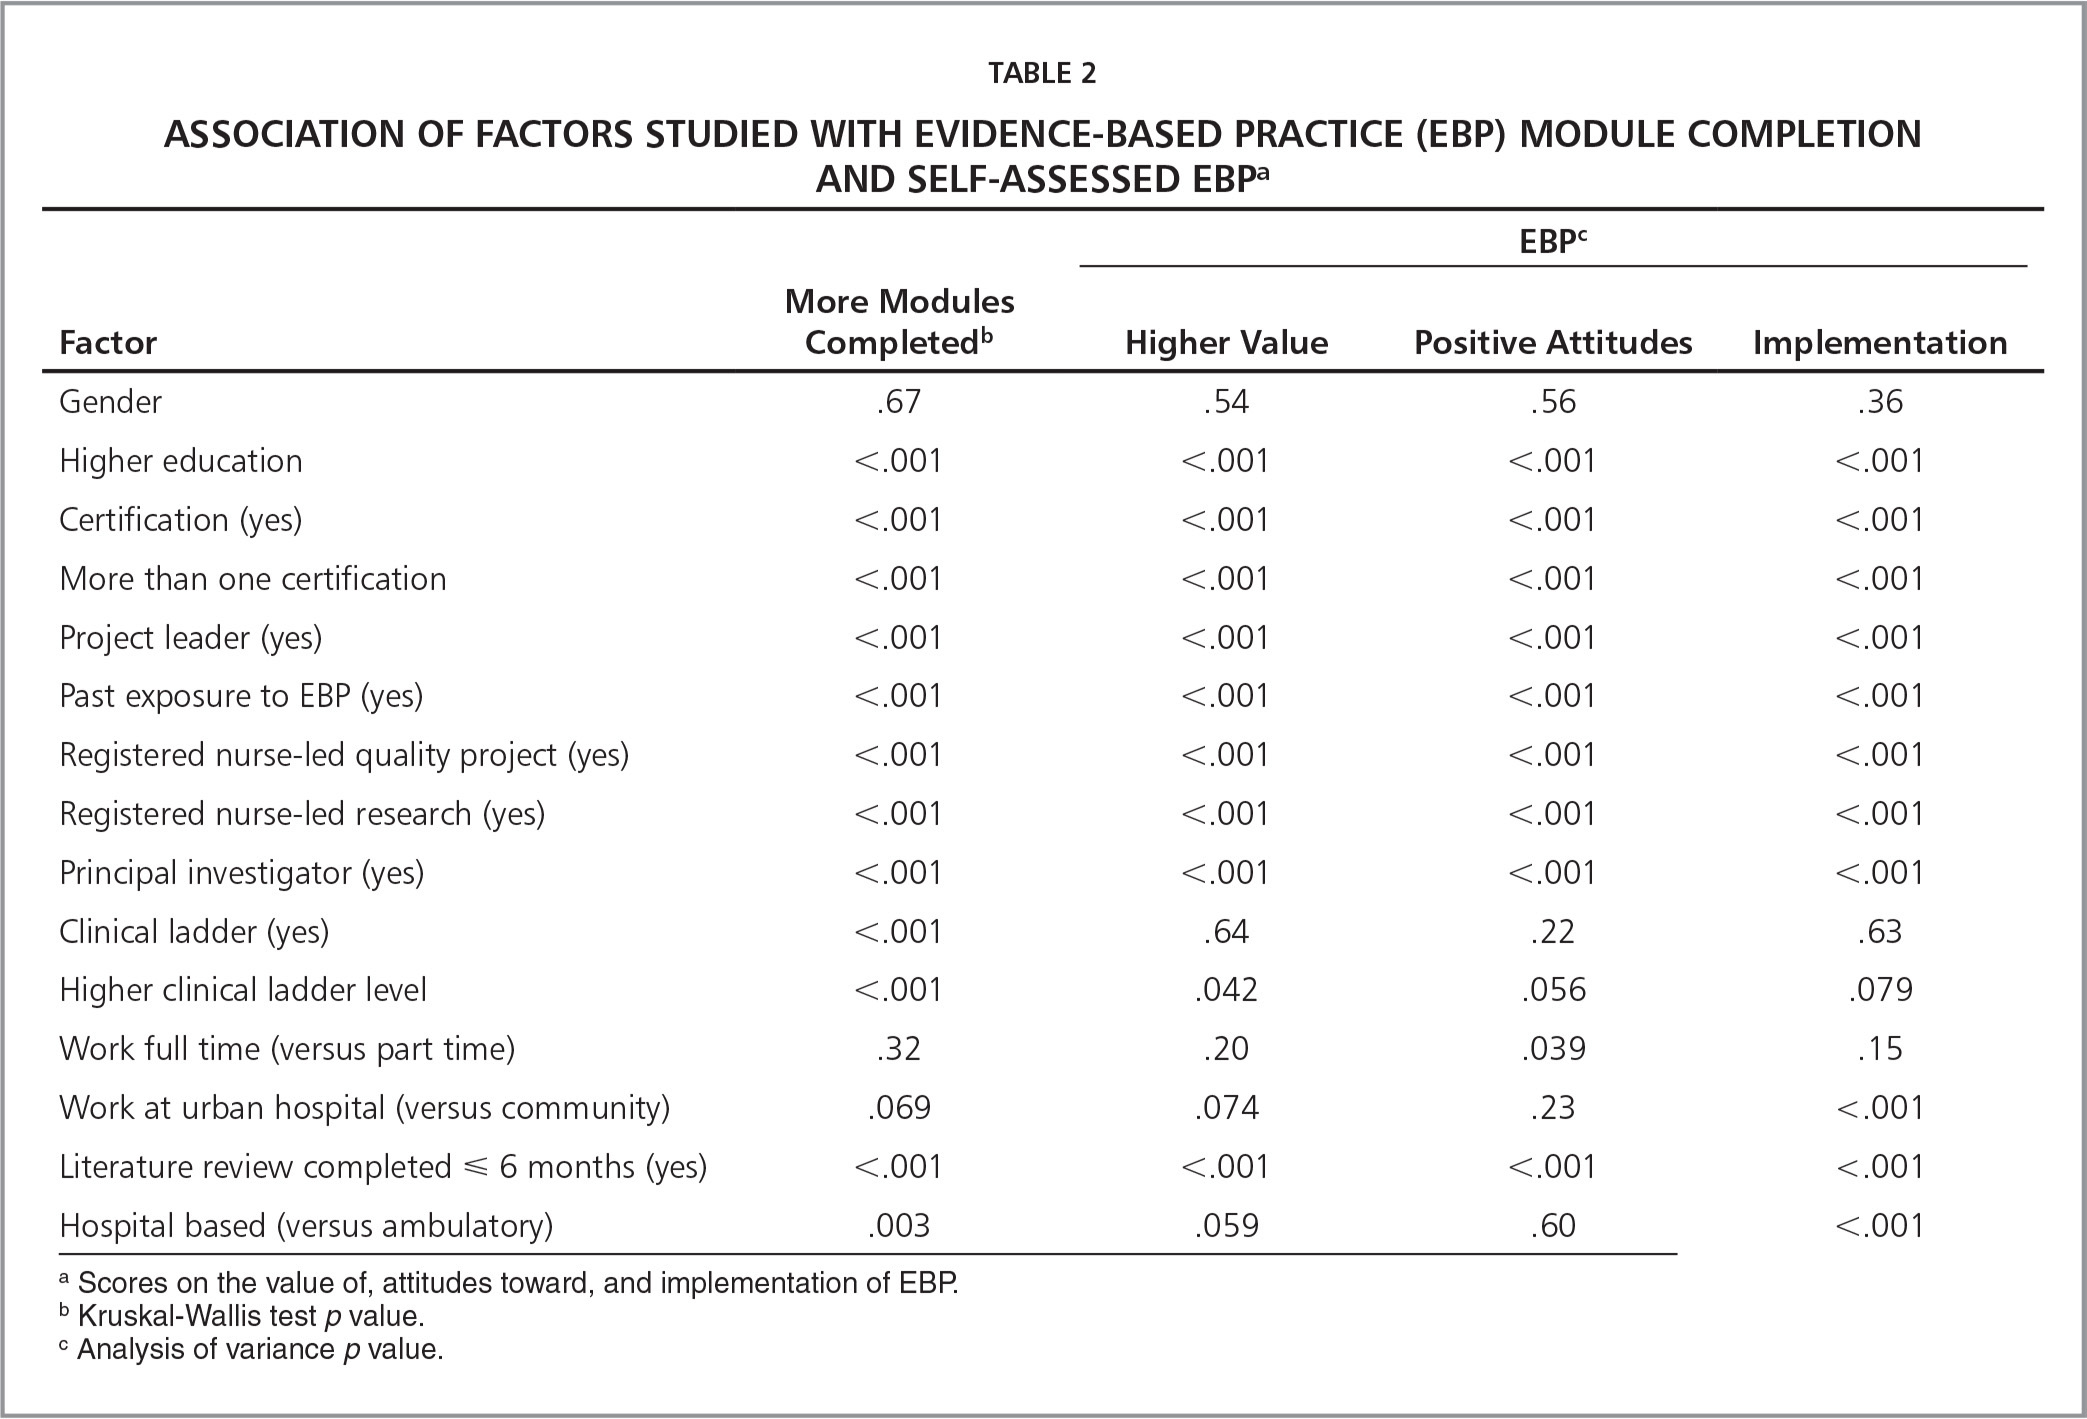 �A;Association of Factors Studied With Evidence-Based Practice (EBP) Module Completion and Self-Assessed EBPa